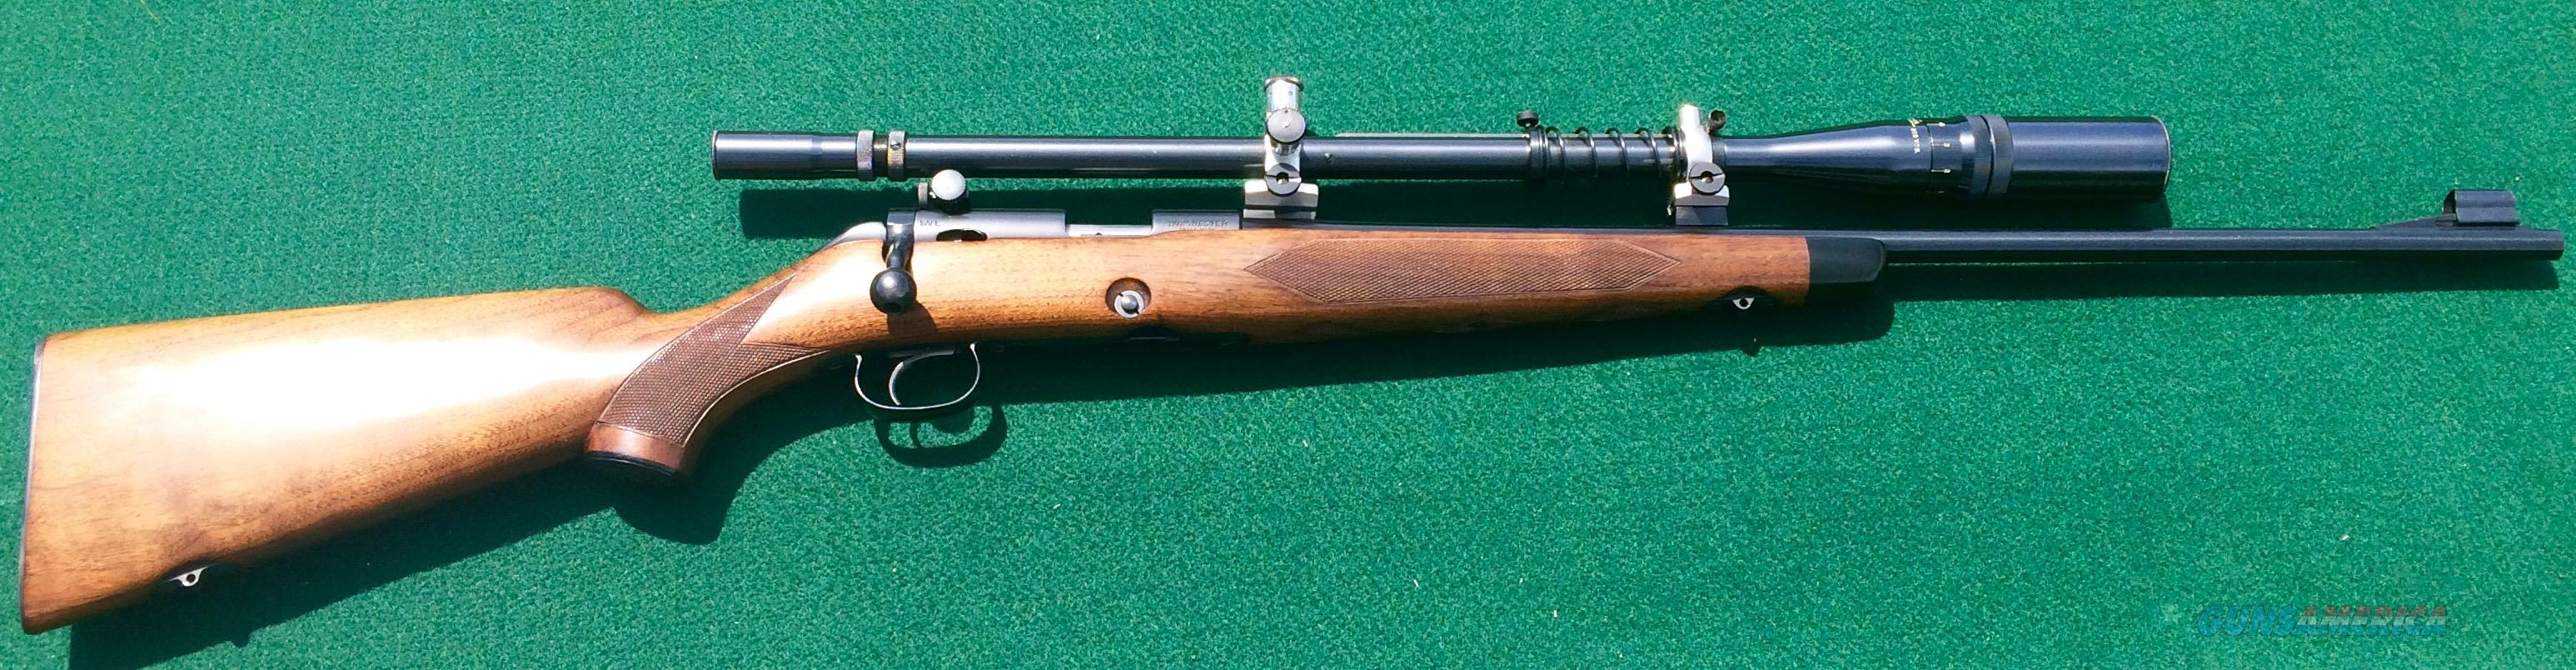 Winchester Model 52B Sporting Rifle  Guns > Rifles > Winchester Rifles - Modern Bolt/Auto/Single > Other Bolt Action